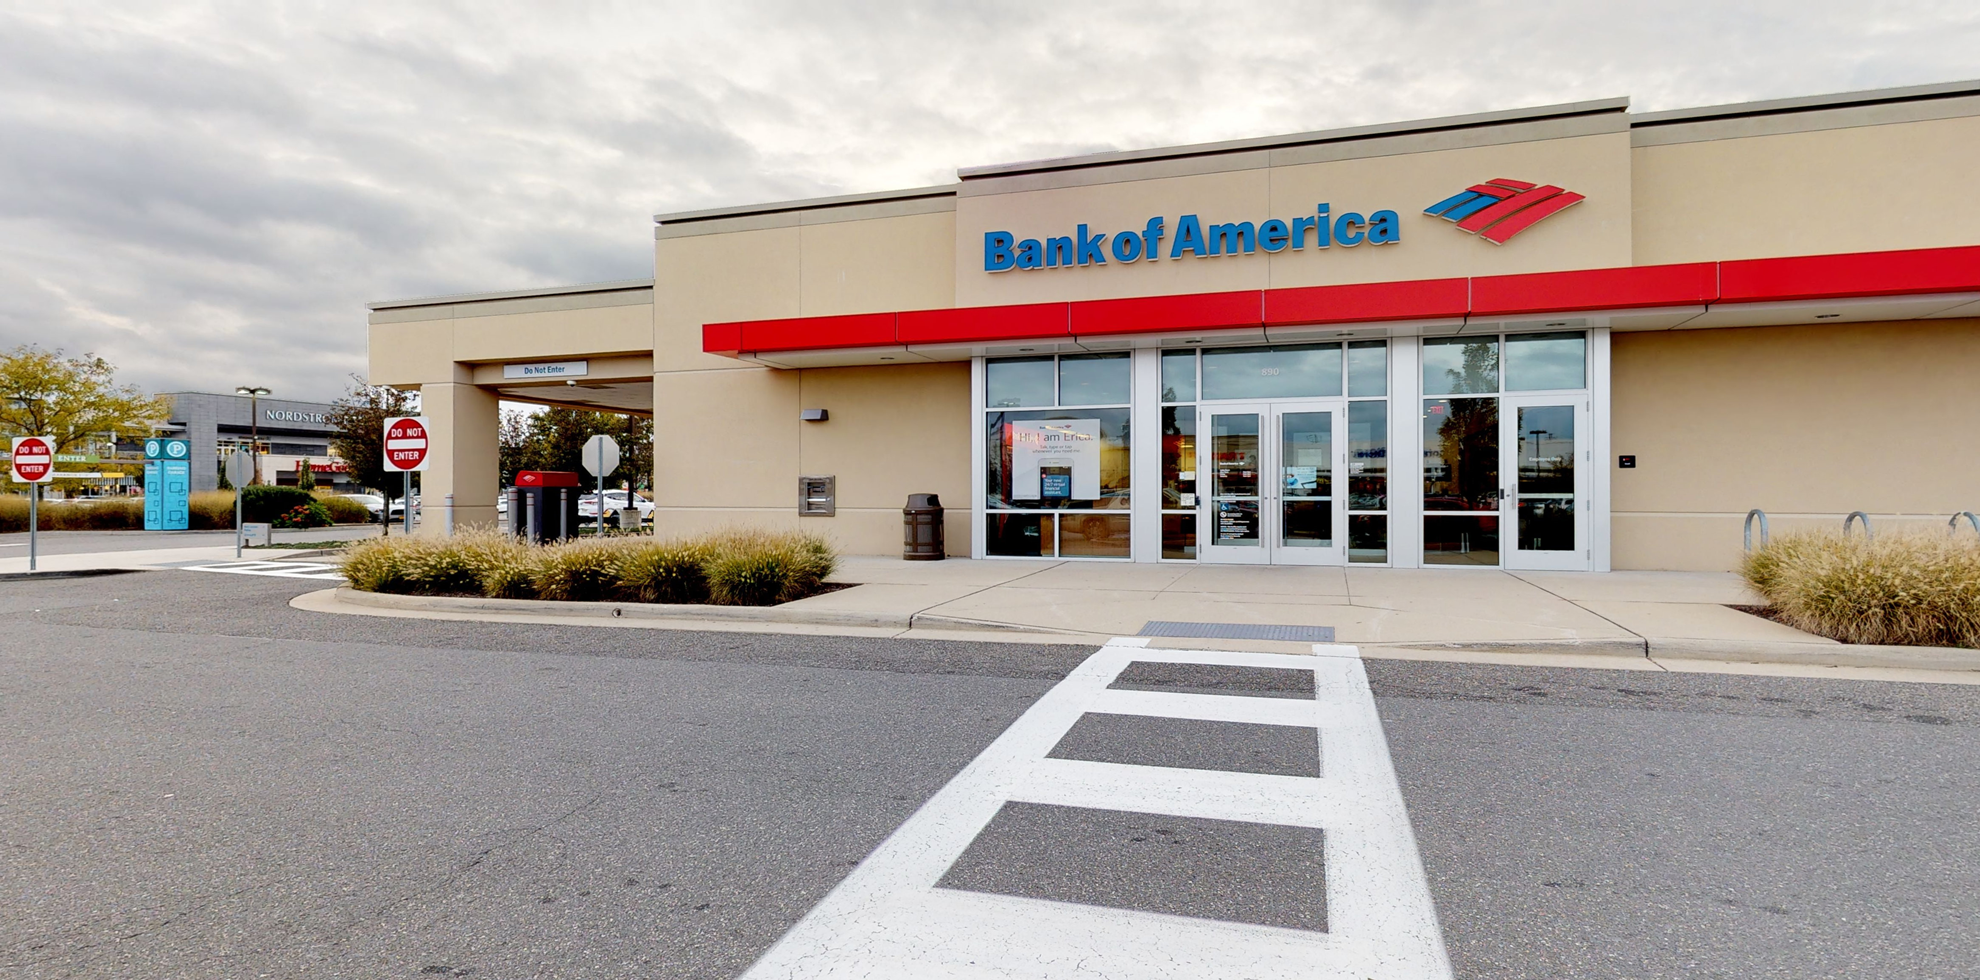 Bank of America financial center with drive-thru ATM | 890 Old Country Rd, Garden City, NY 11530